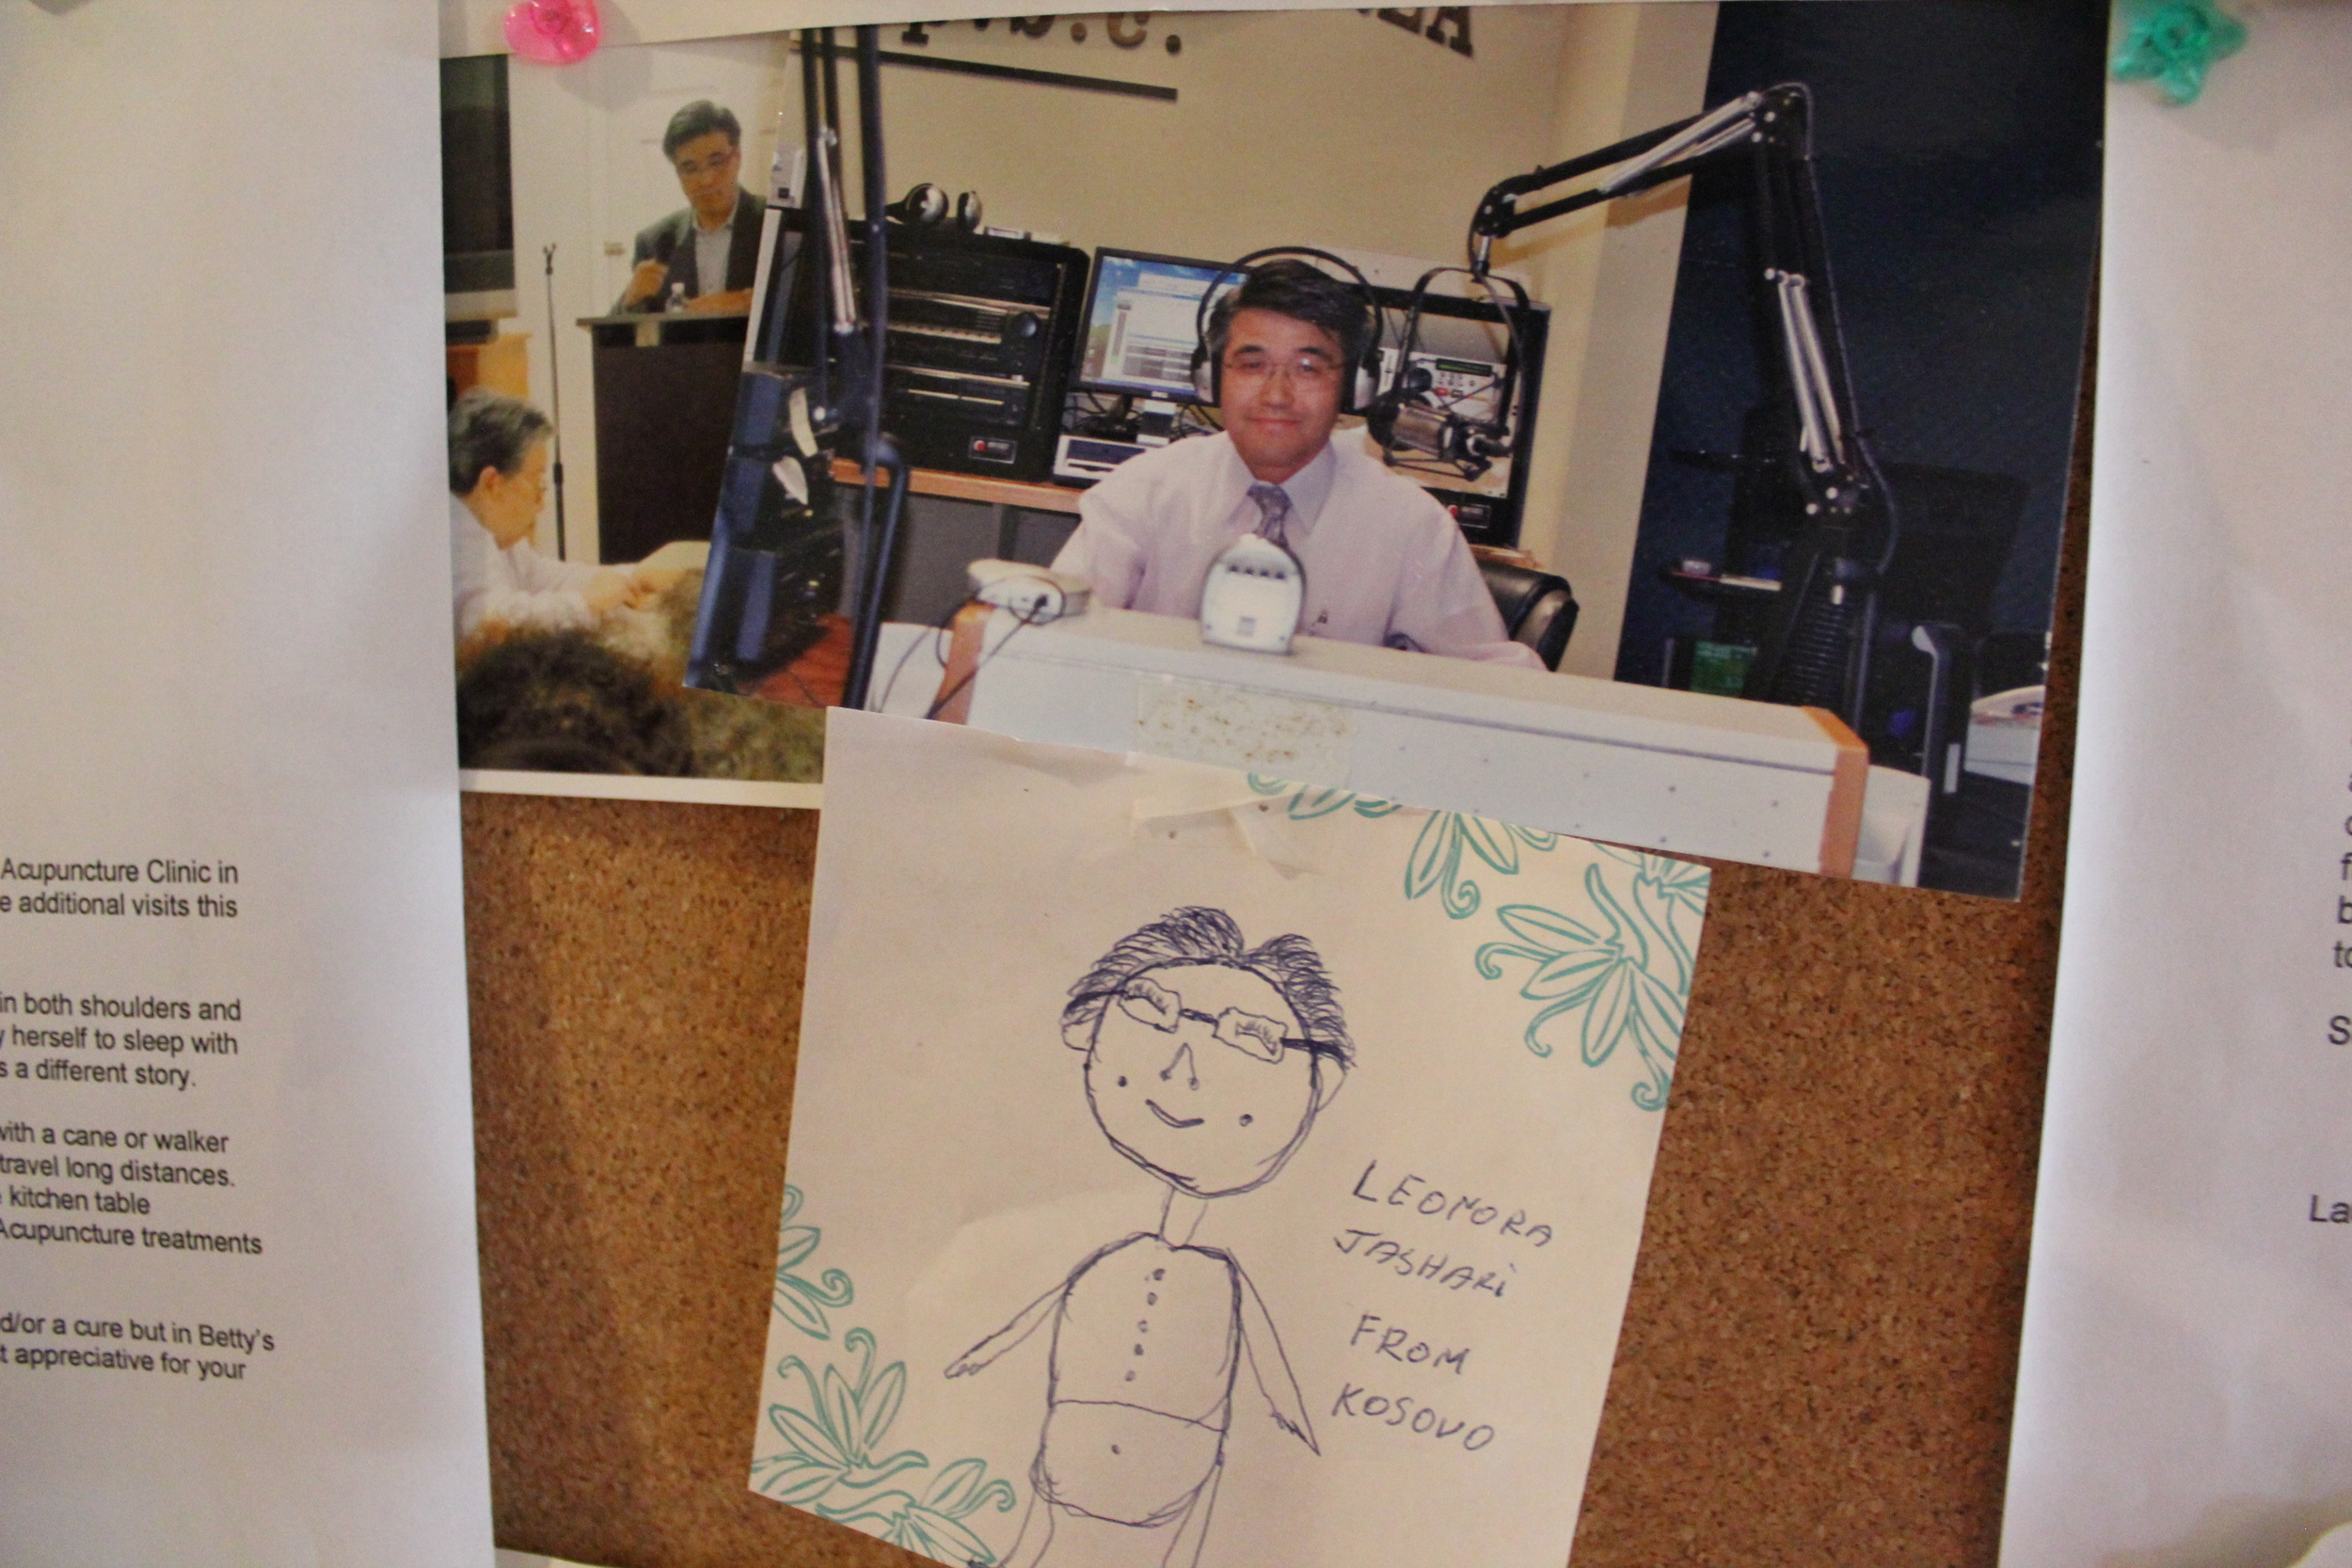 On the Side - I used to be a regular guest at Radio Korea here in Atlanta. I focused on discussing the importance of maintaining mental and physical health.